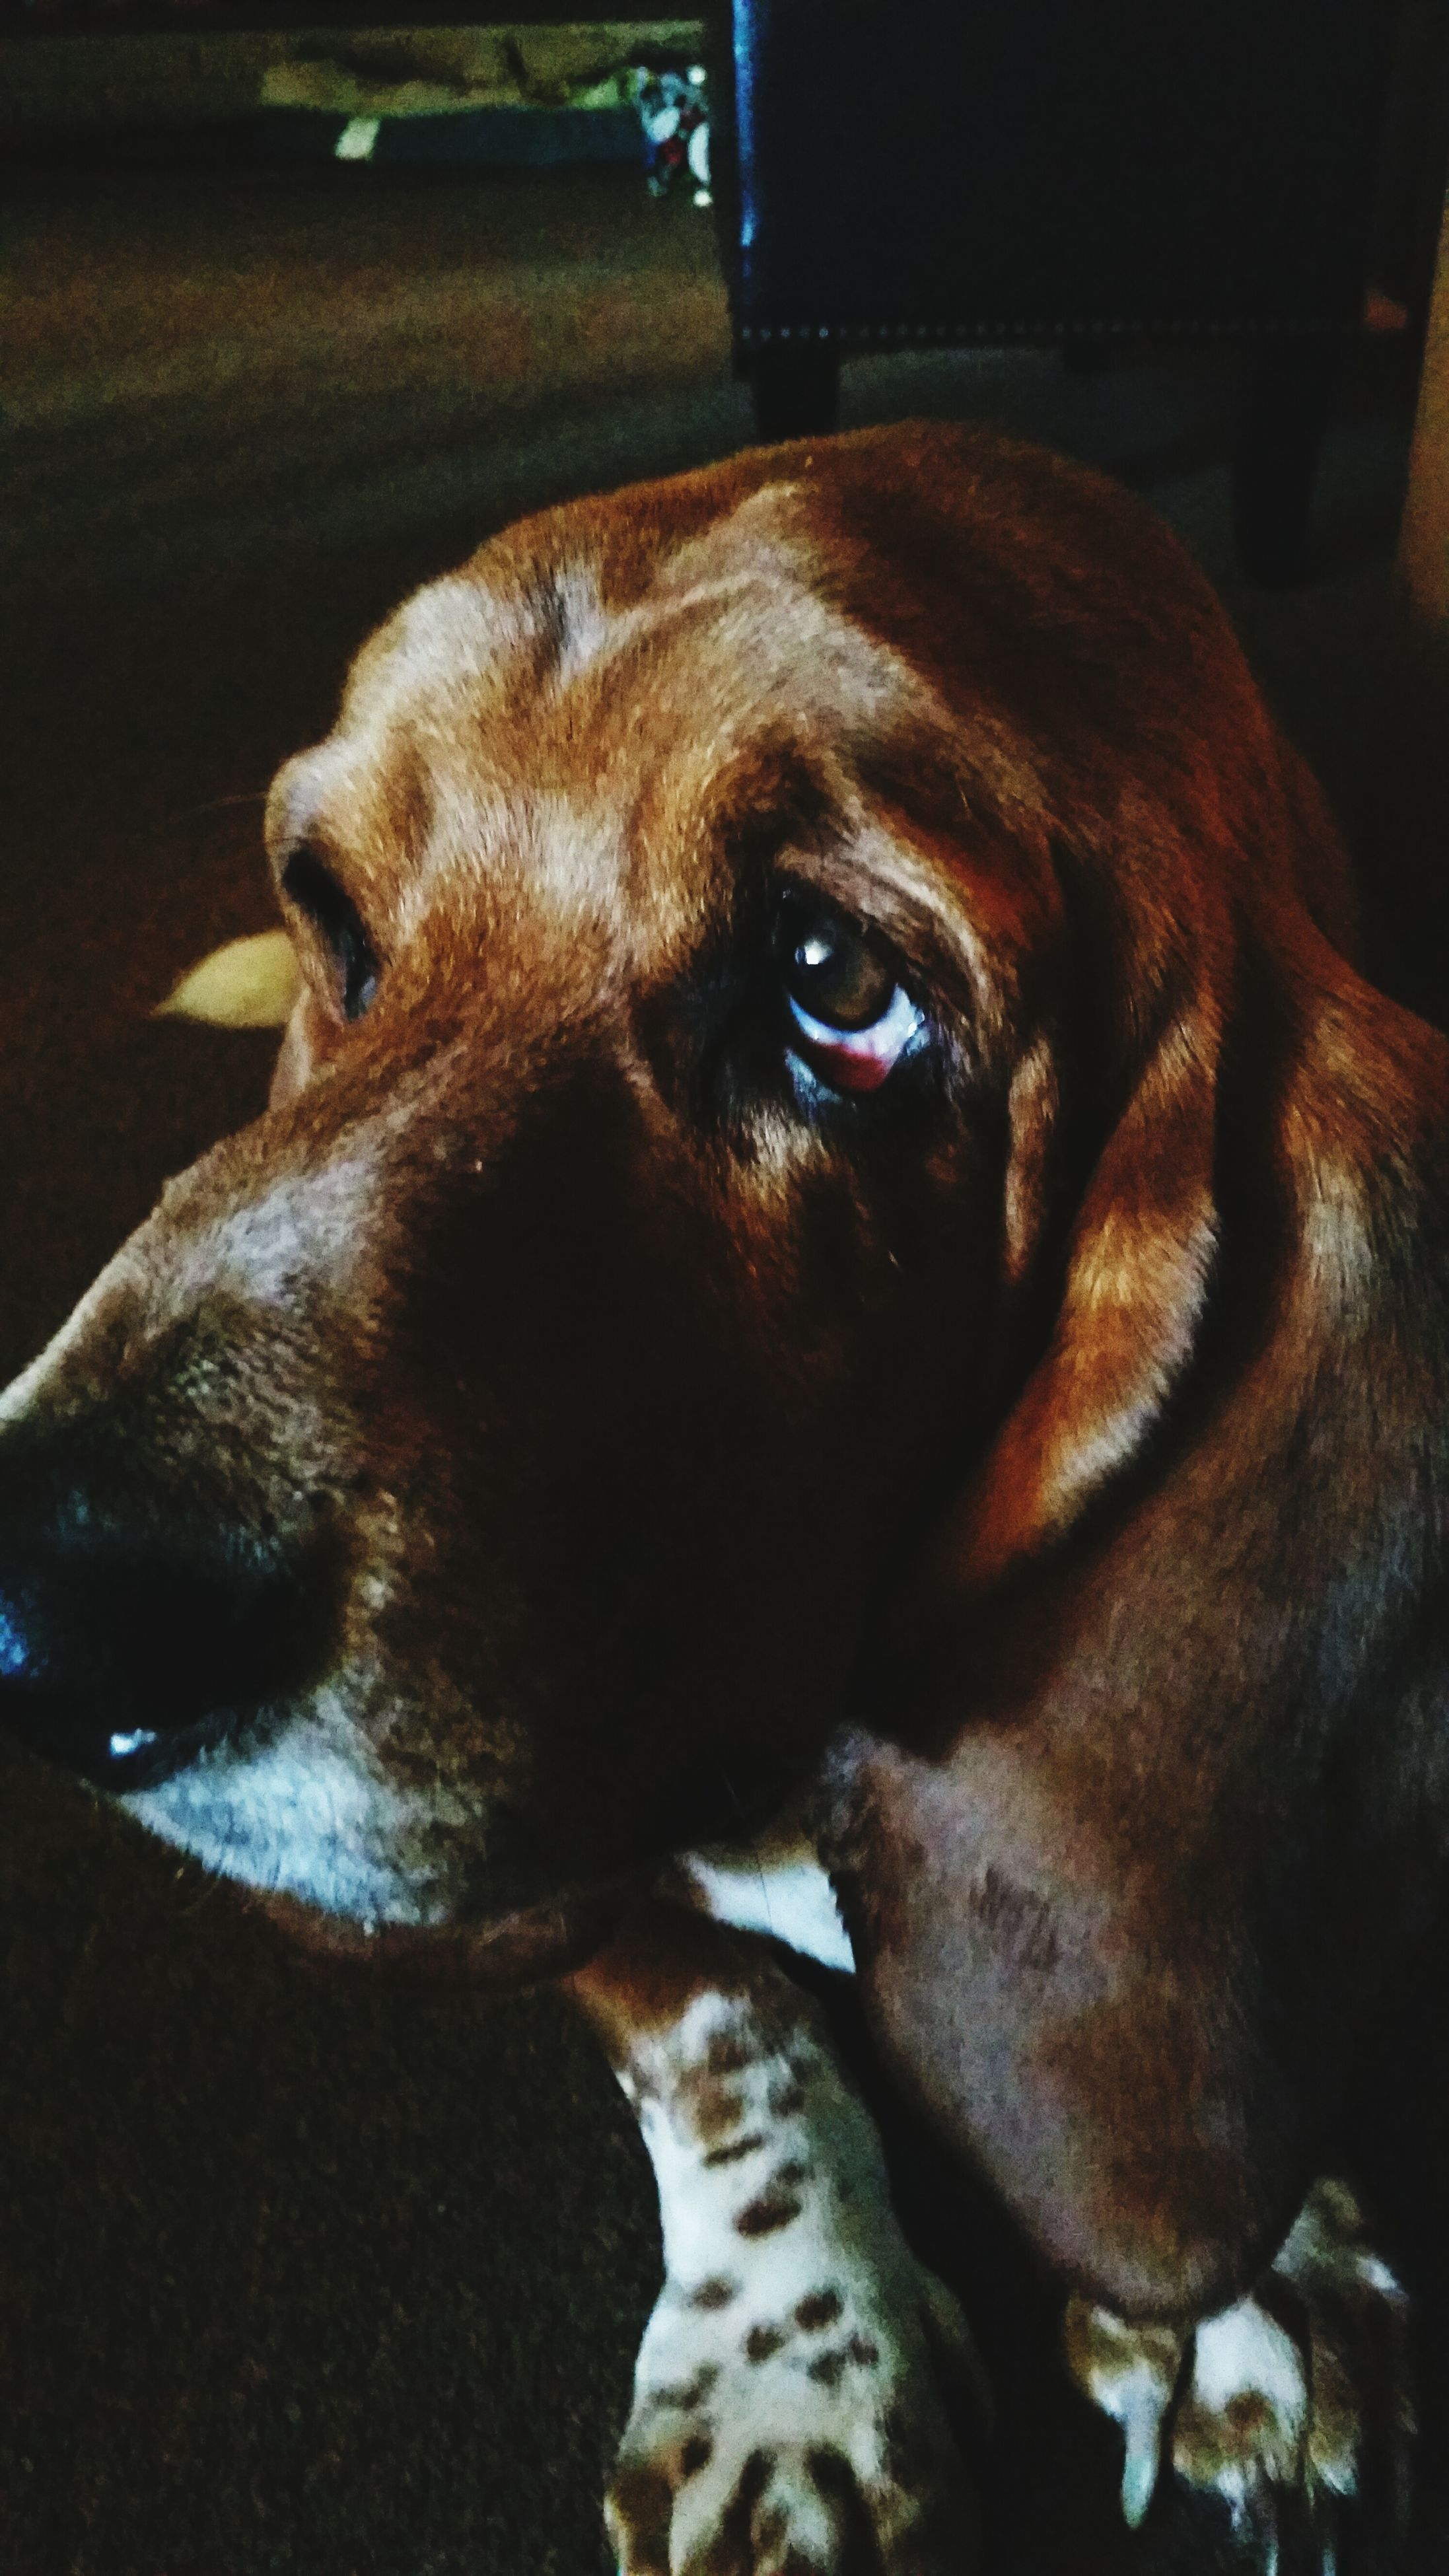 pets, dog, domestic animals, animal themes, one animal, mammal, indoors, animal head, relaxation, close-up, portrait, looking at camera, brown, lying down, home interior, pet collar, resting, no people, loyalty